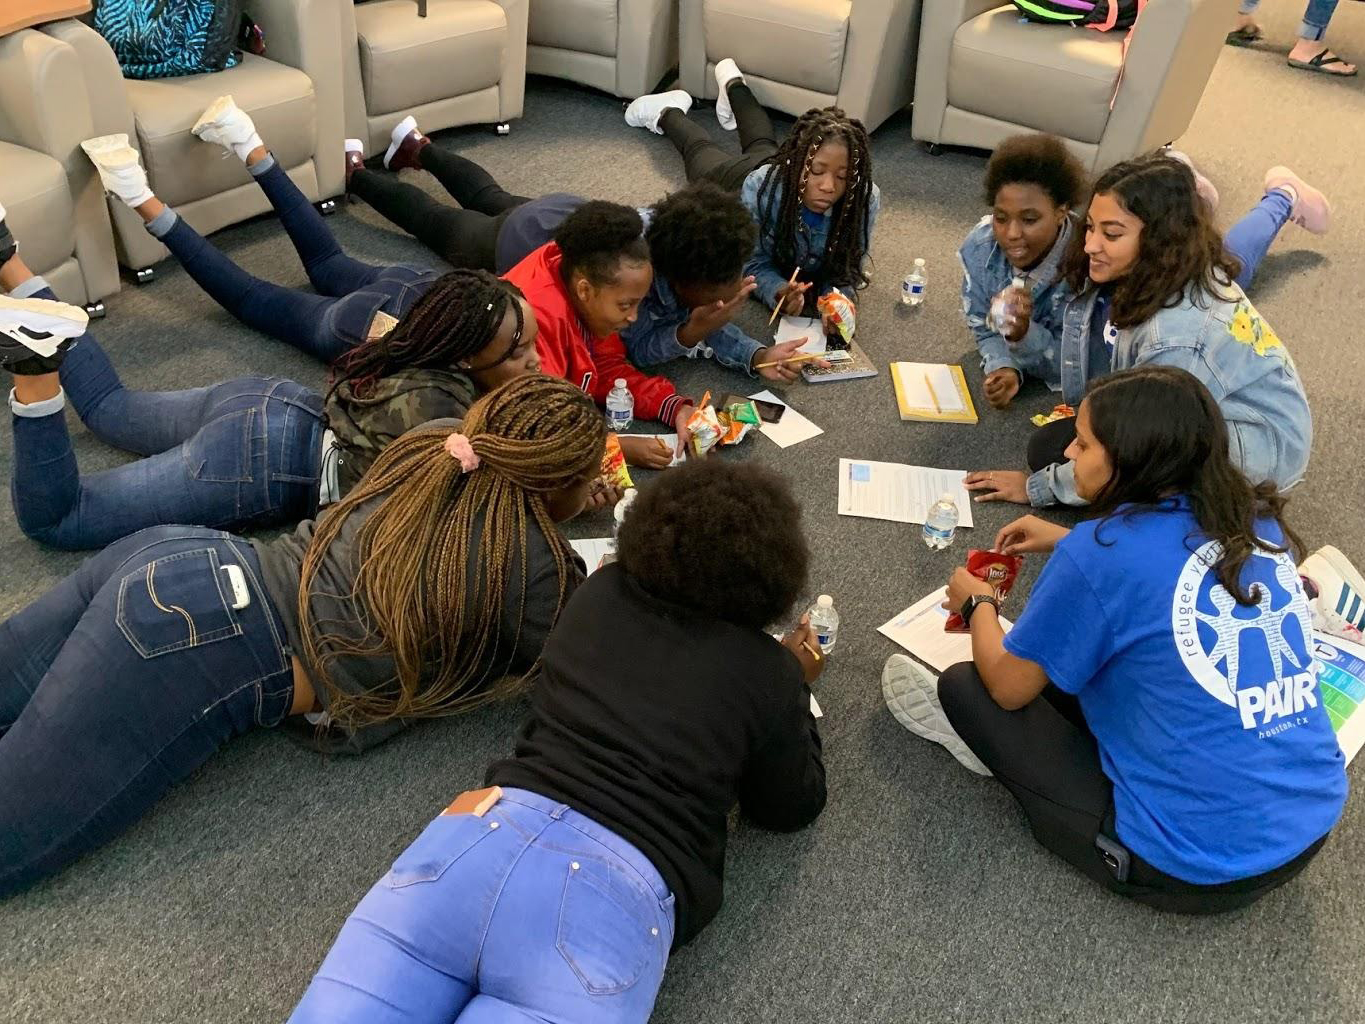 PAIR mentors doing an activity with students in April 2020.